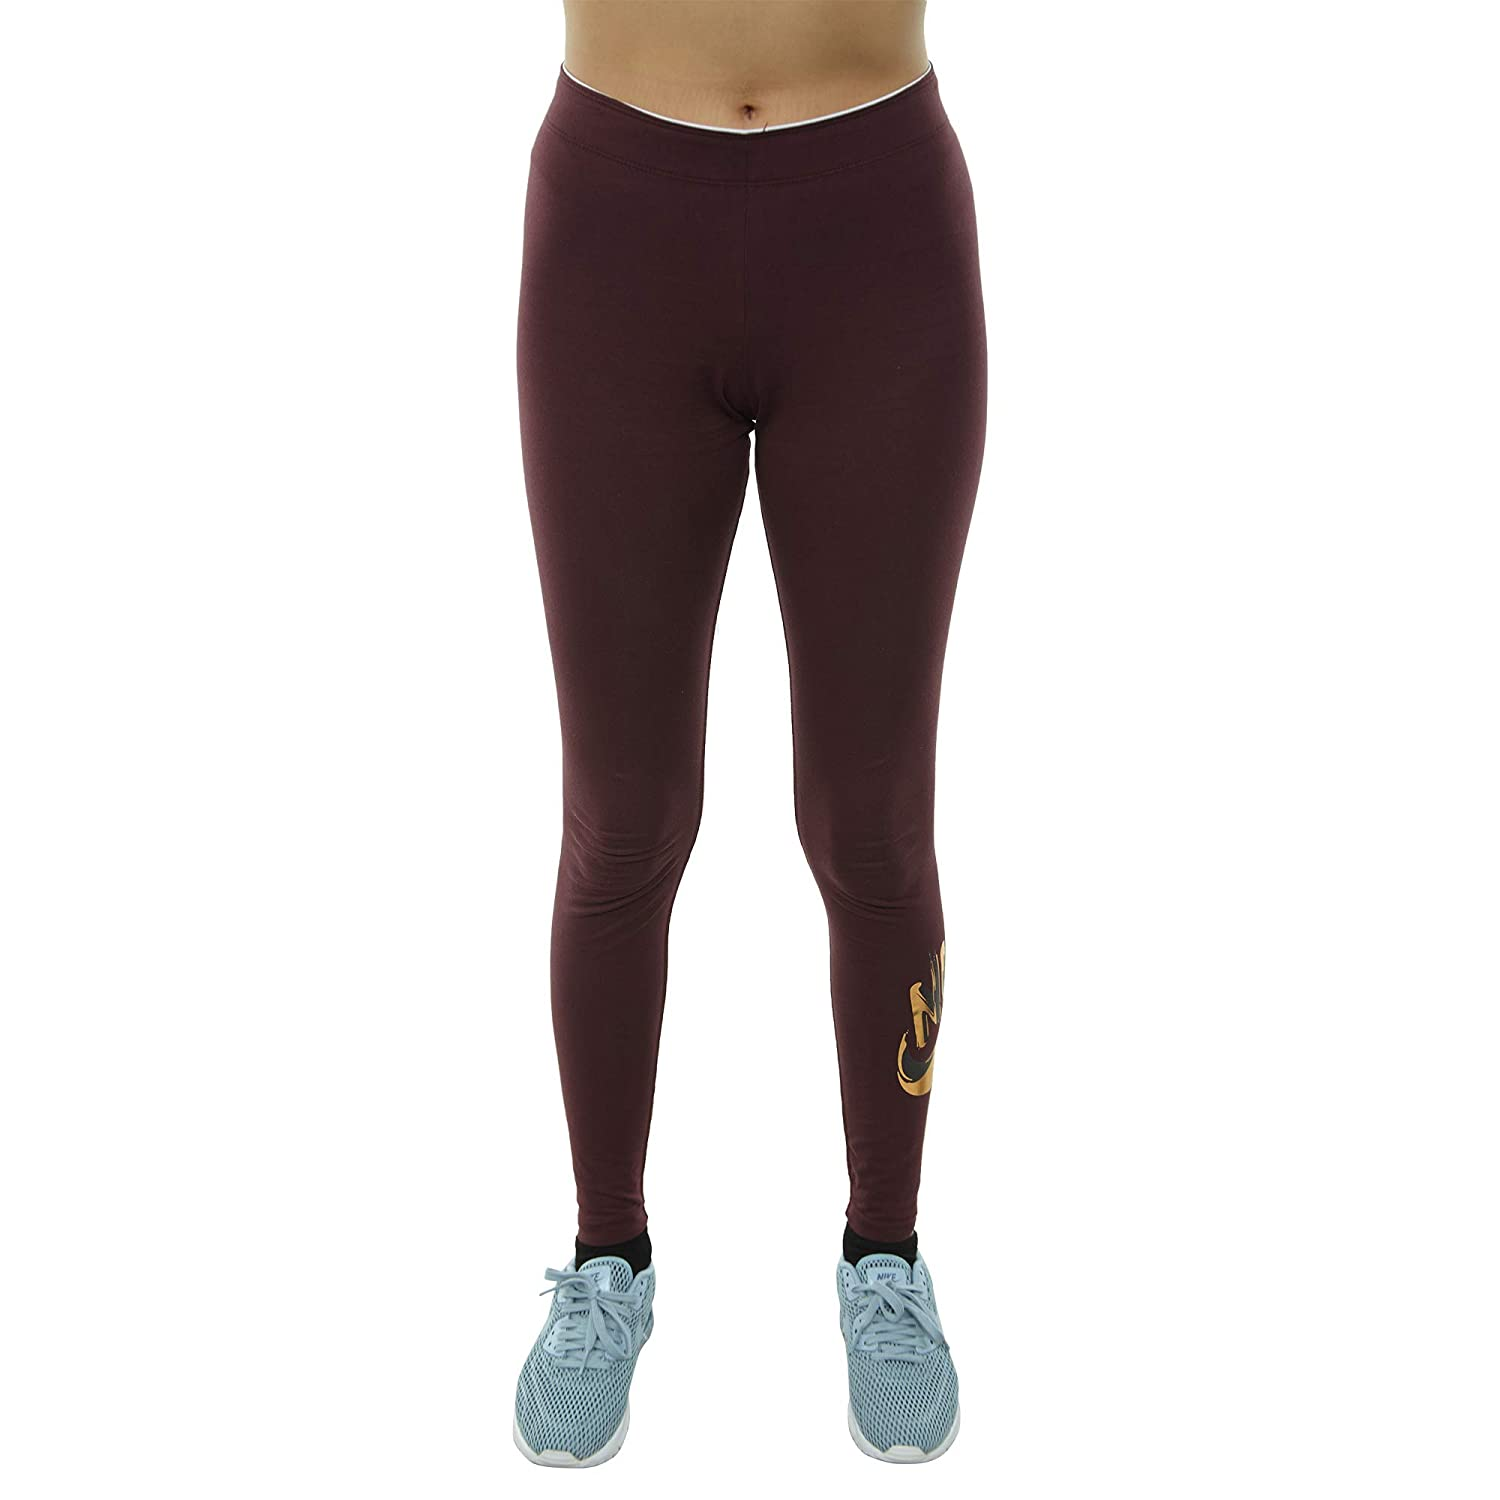 55ad05b10bdba Amazon.com: NIKE Women's NSW GX Metallic Leggings Burgundy/Metallic Gold  939301-652: Shoes